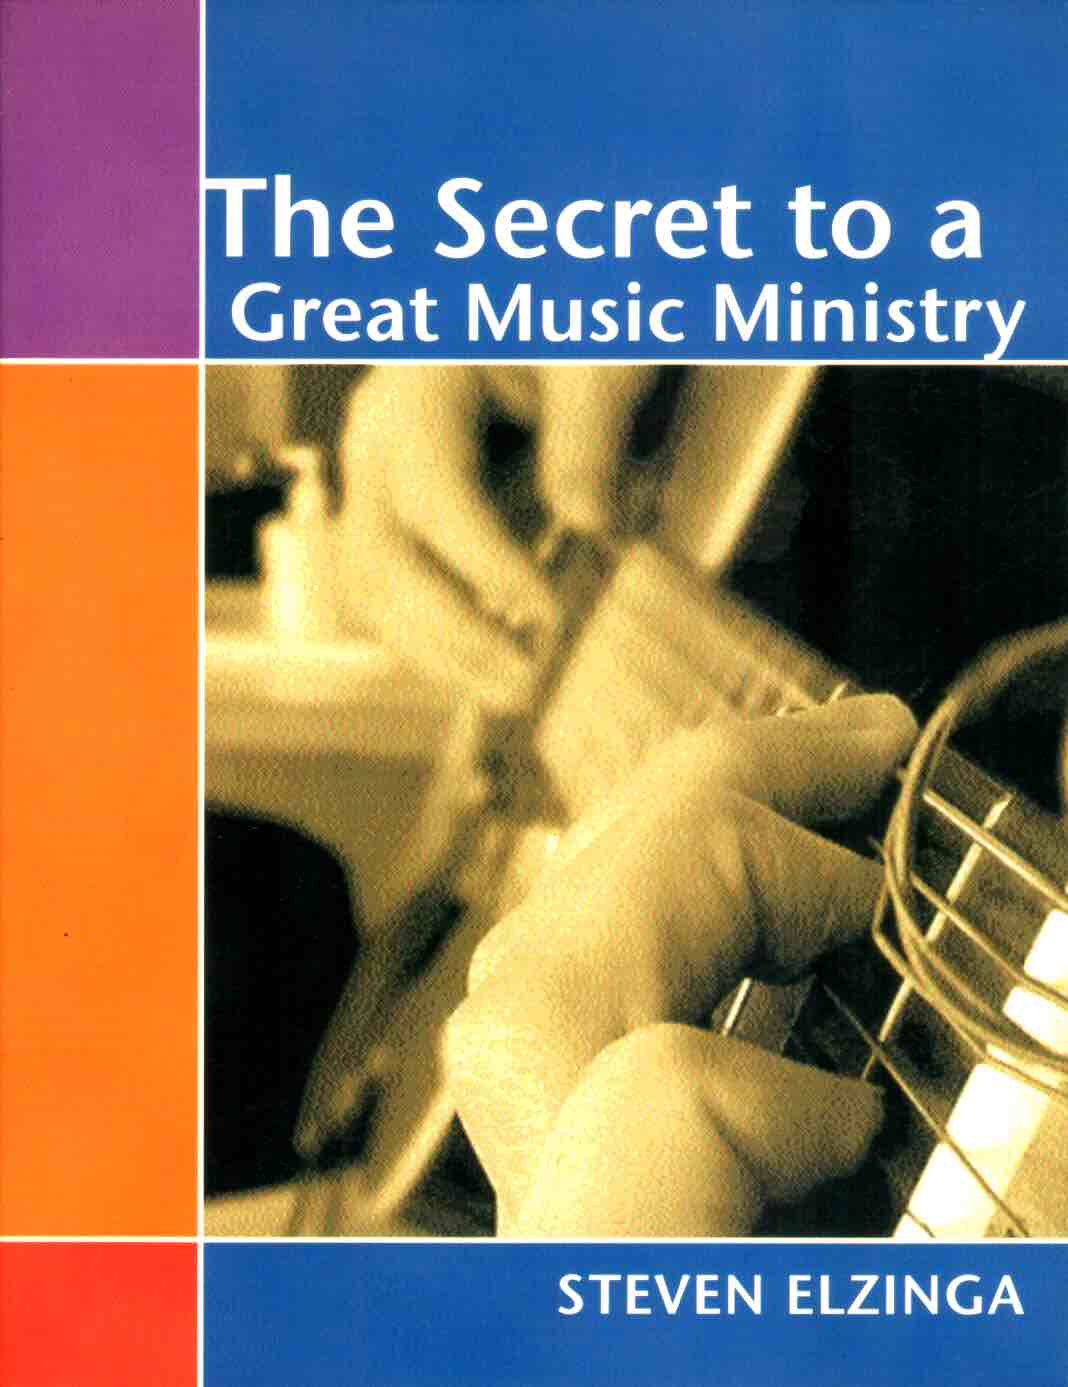 The Secret to a Great Music Ministry